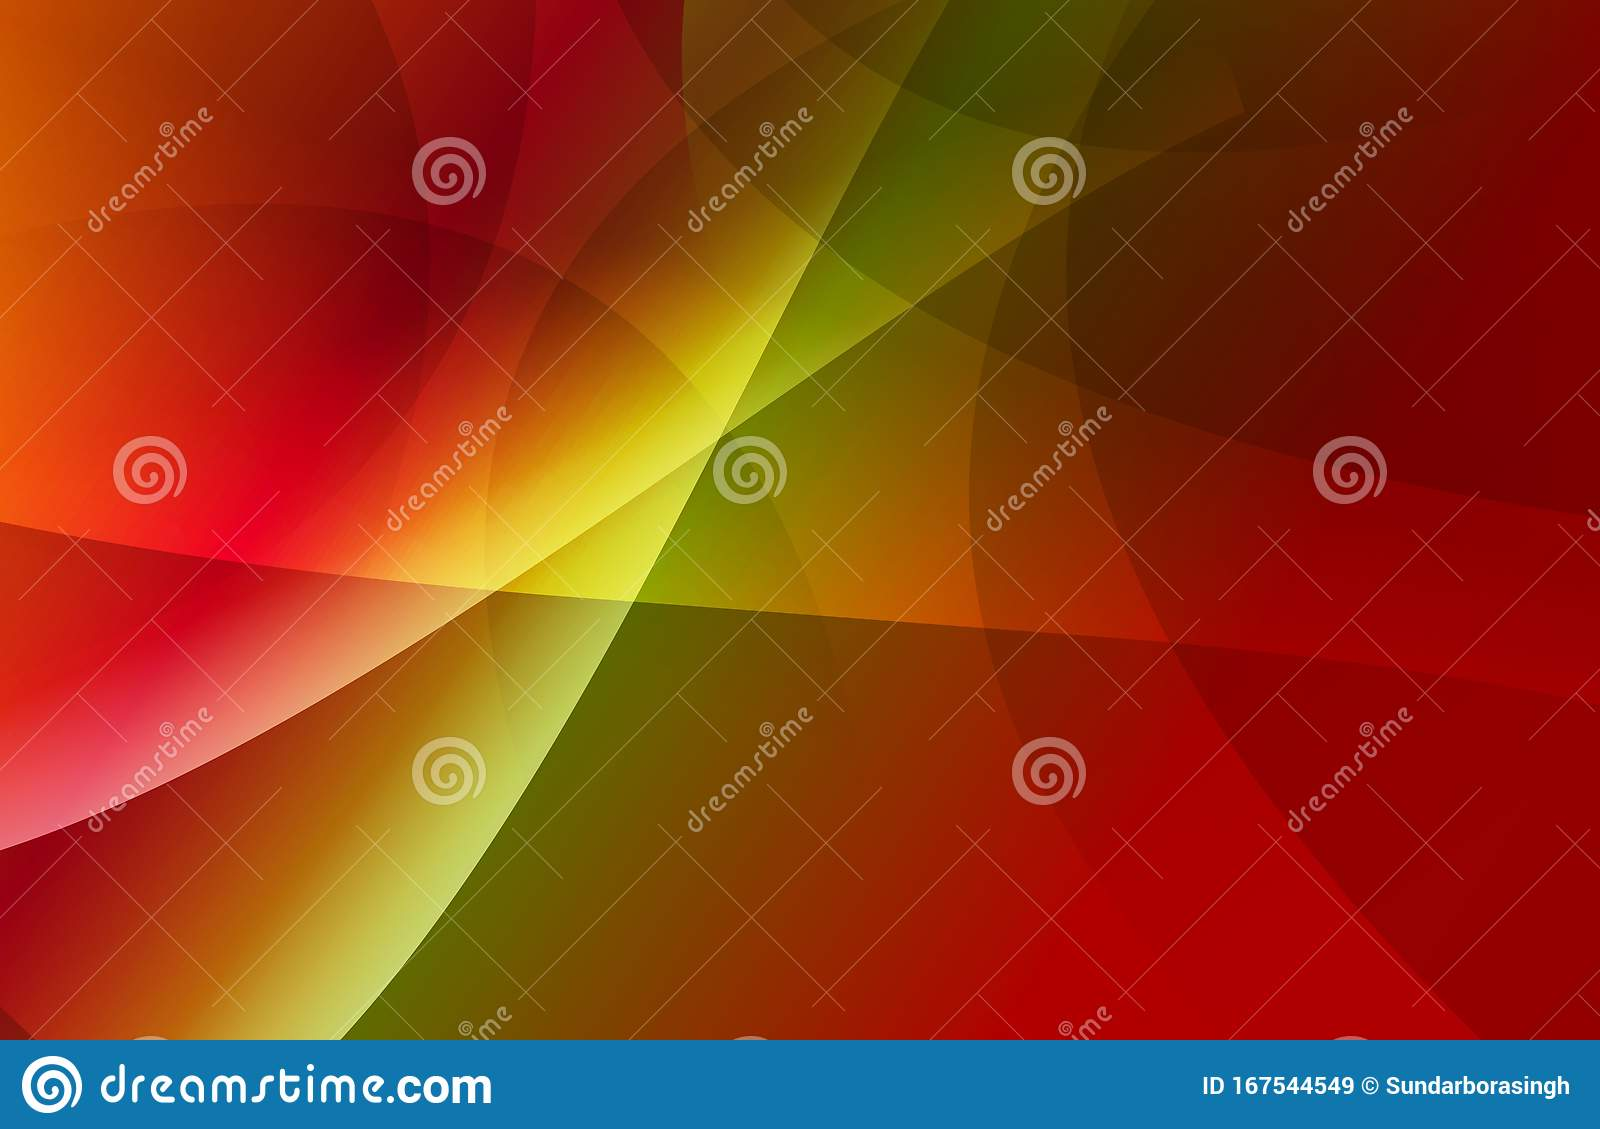 Abstract Colored Background Bright Texture Curve Wallpaper Stock Illustration Illustration Of Black Drops 167544549